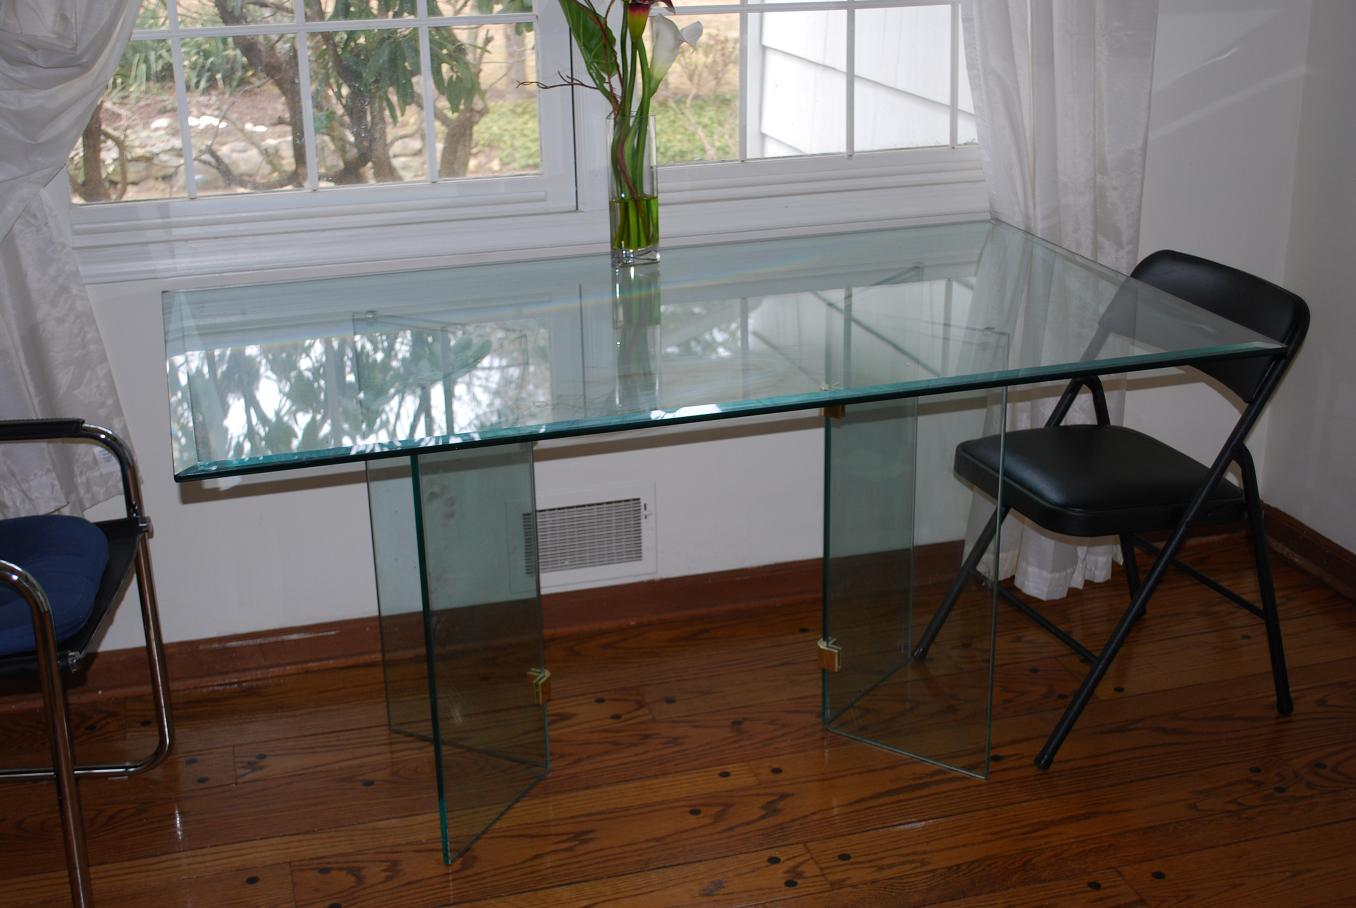 glass-kitchen-tables-to-create-a-easy-on-the-eye-kitchen-design-with-easy-on-the-eye-appearance-4